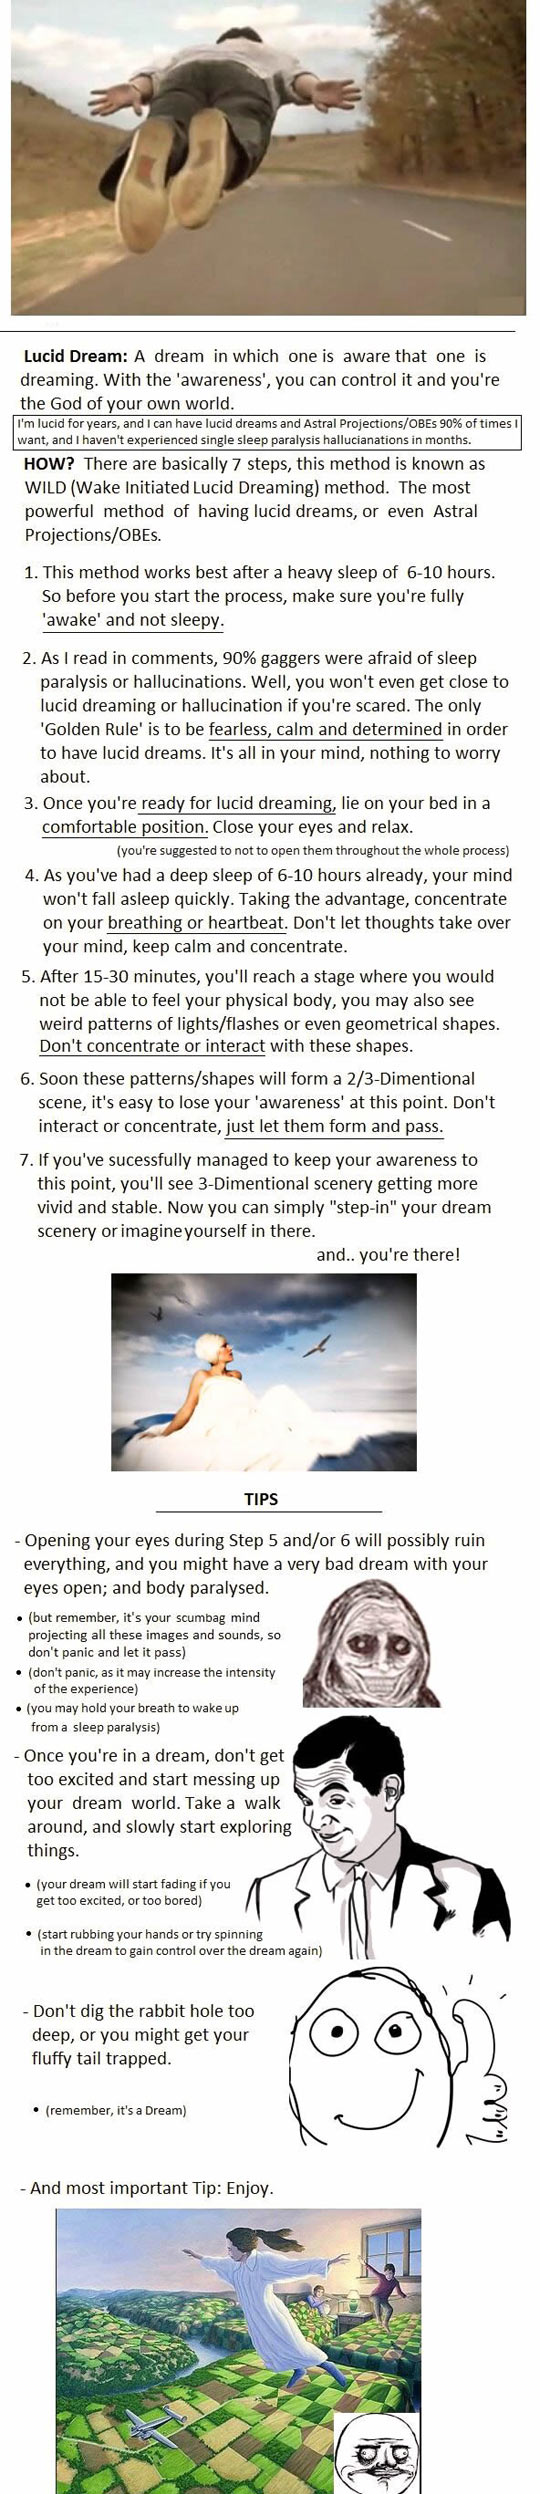 Easy way to lucid dream tonight